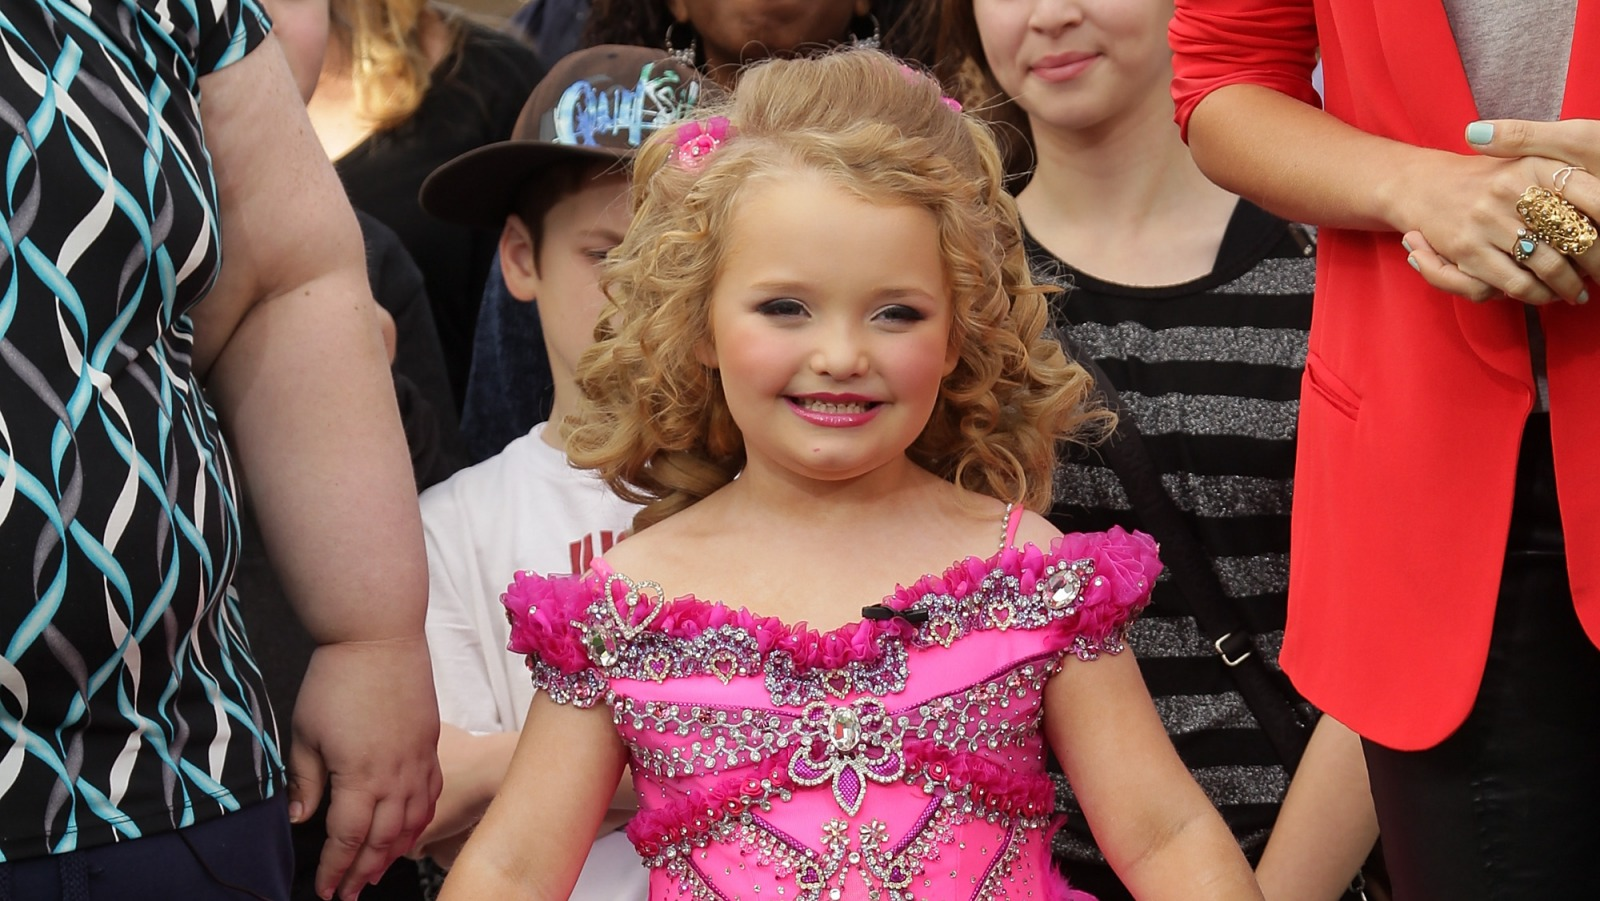 Honey Boo Boo is all grown up